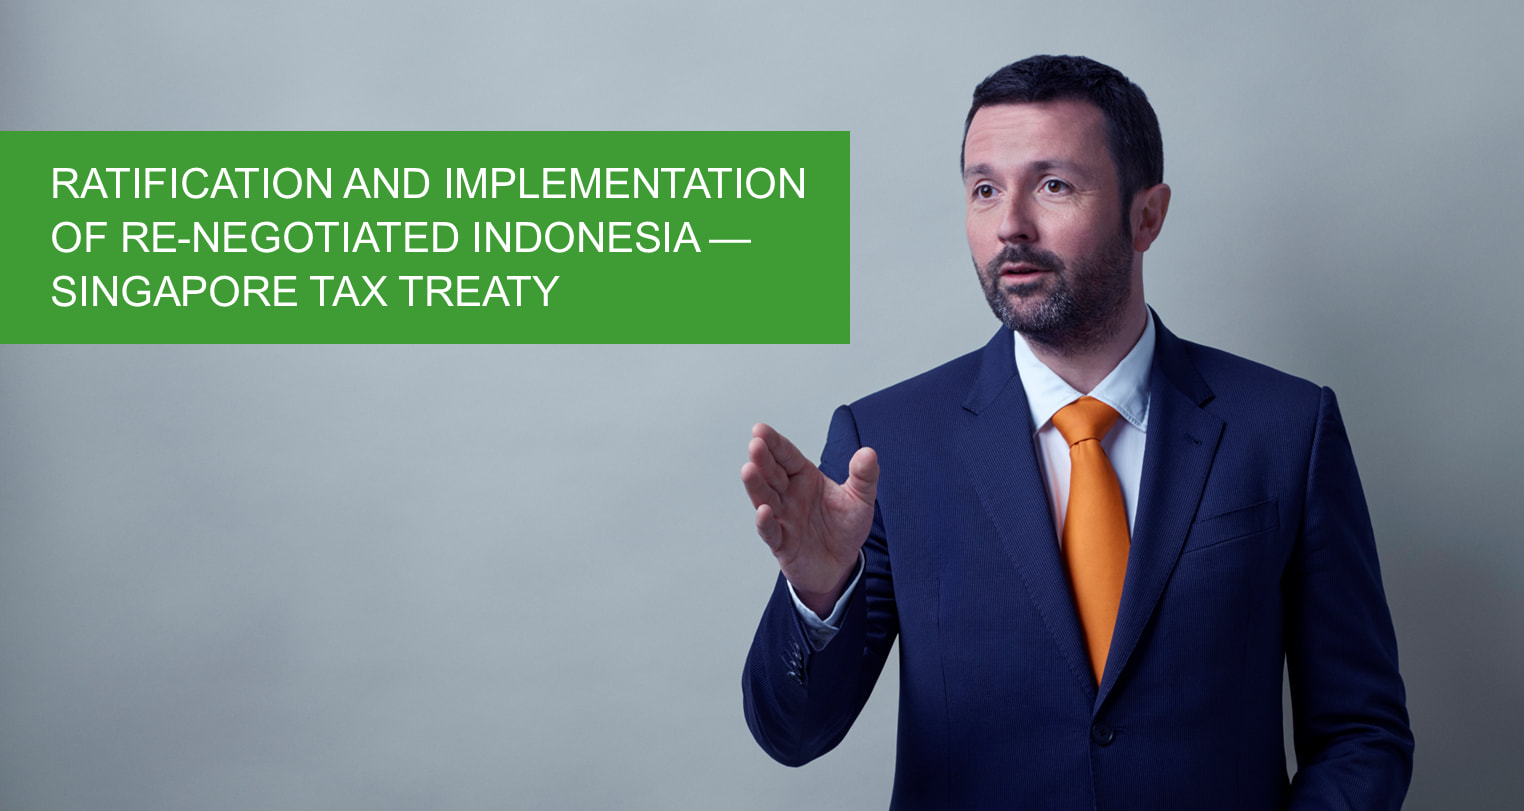 ratification_and_implementation_of_re-negotiated_indonesia-singapore_tax_treaty.png